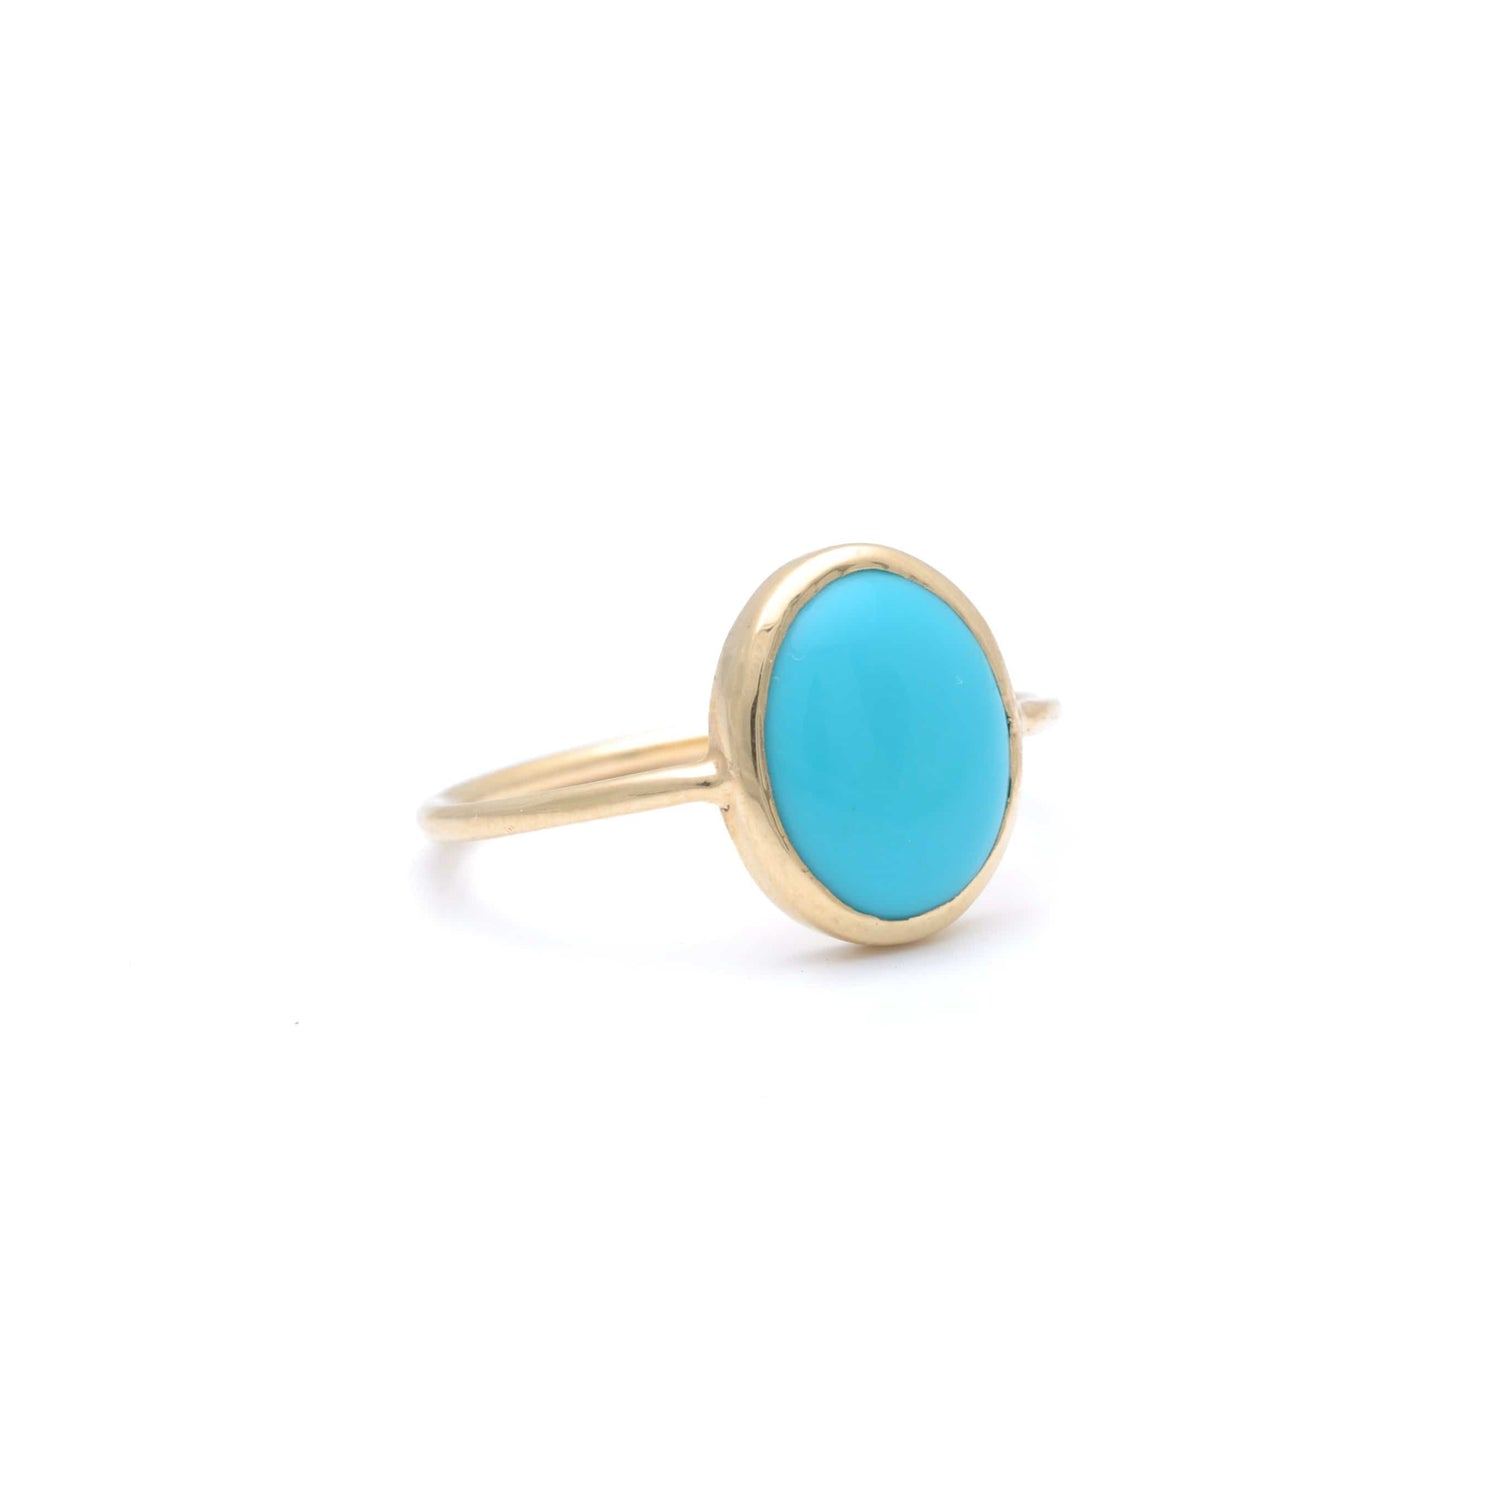 Large Oval Turquoise Cabochon Gold Ring